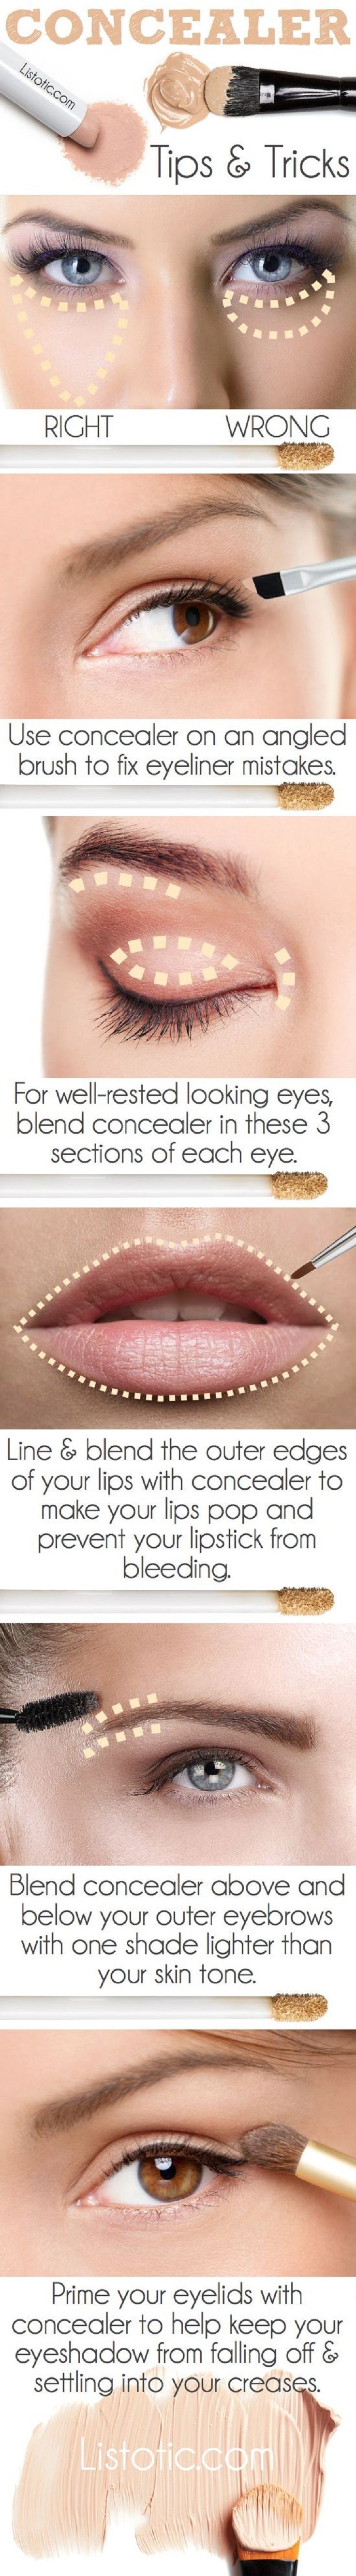 Use Your Concealer The Right Way - 13 Best Makeup Tutorials and Infographics for Beginners